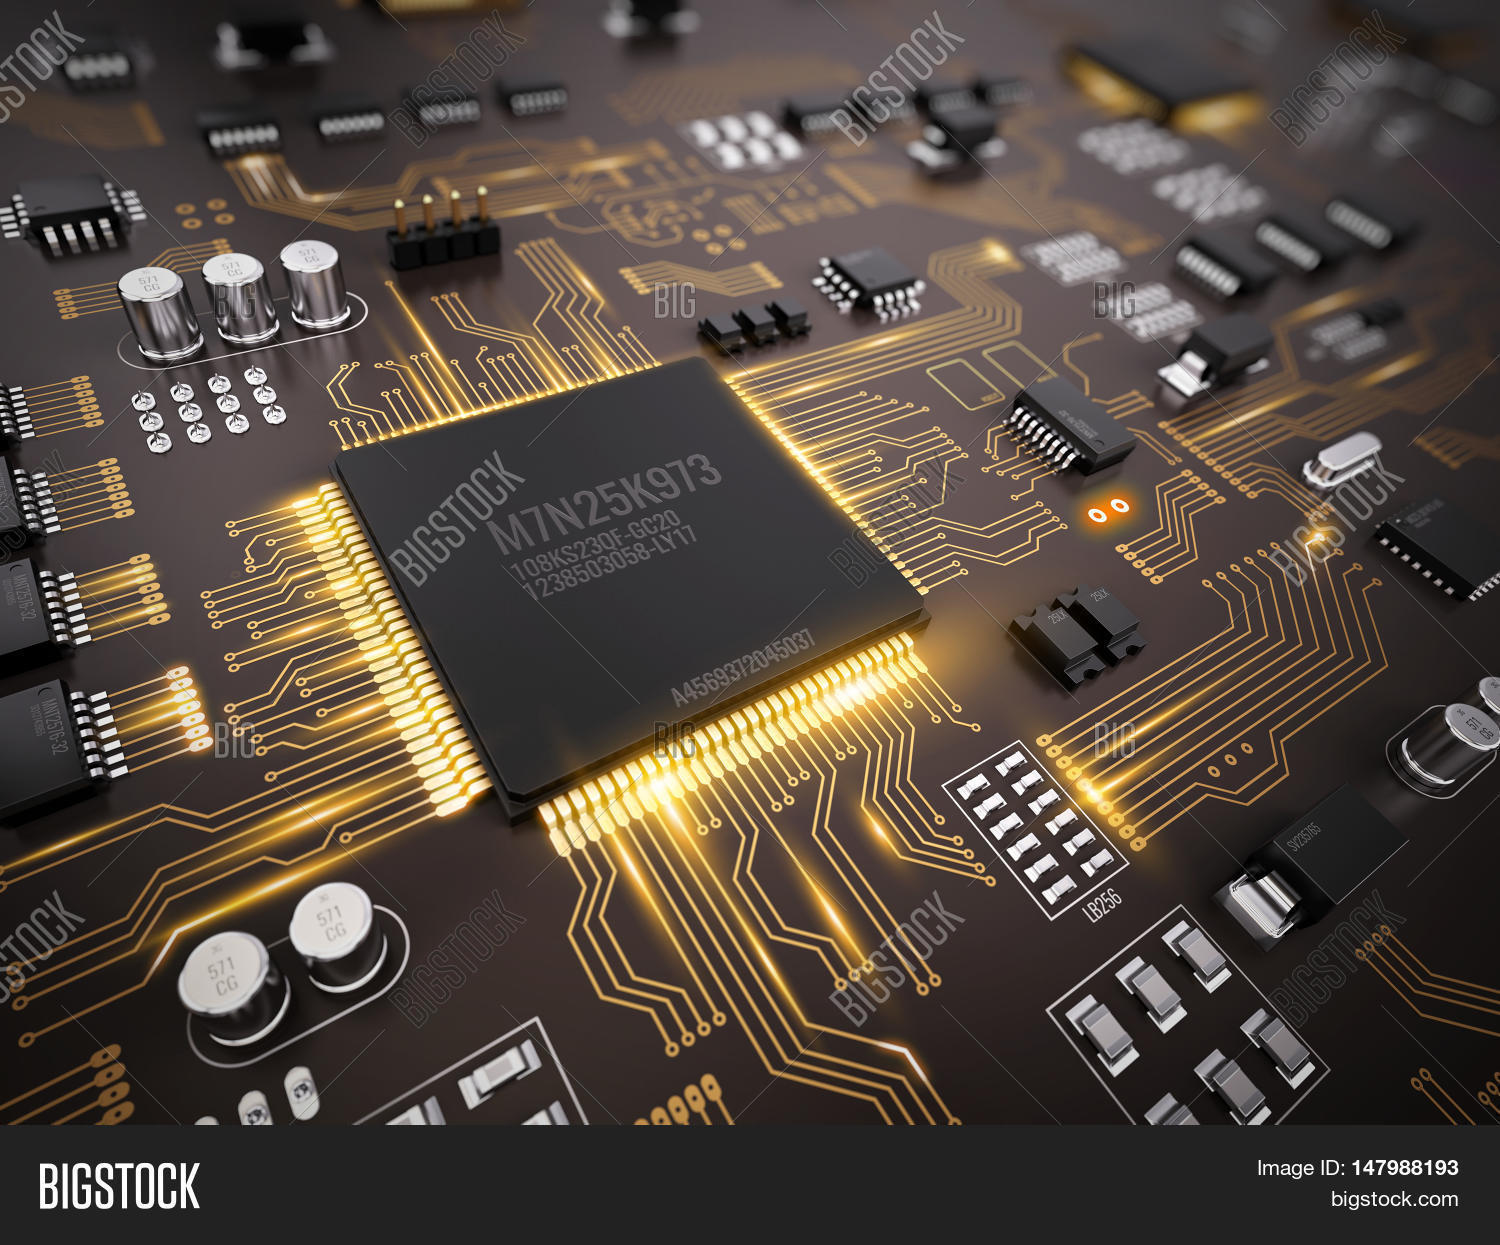 High Tech Electronic Image Photo Free Trial Bigstock Stockfoto Printed Circuit Board Pcb Used In Industrial With Processor Microchips And Glowing Digital